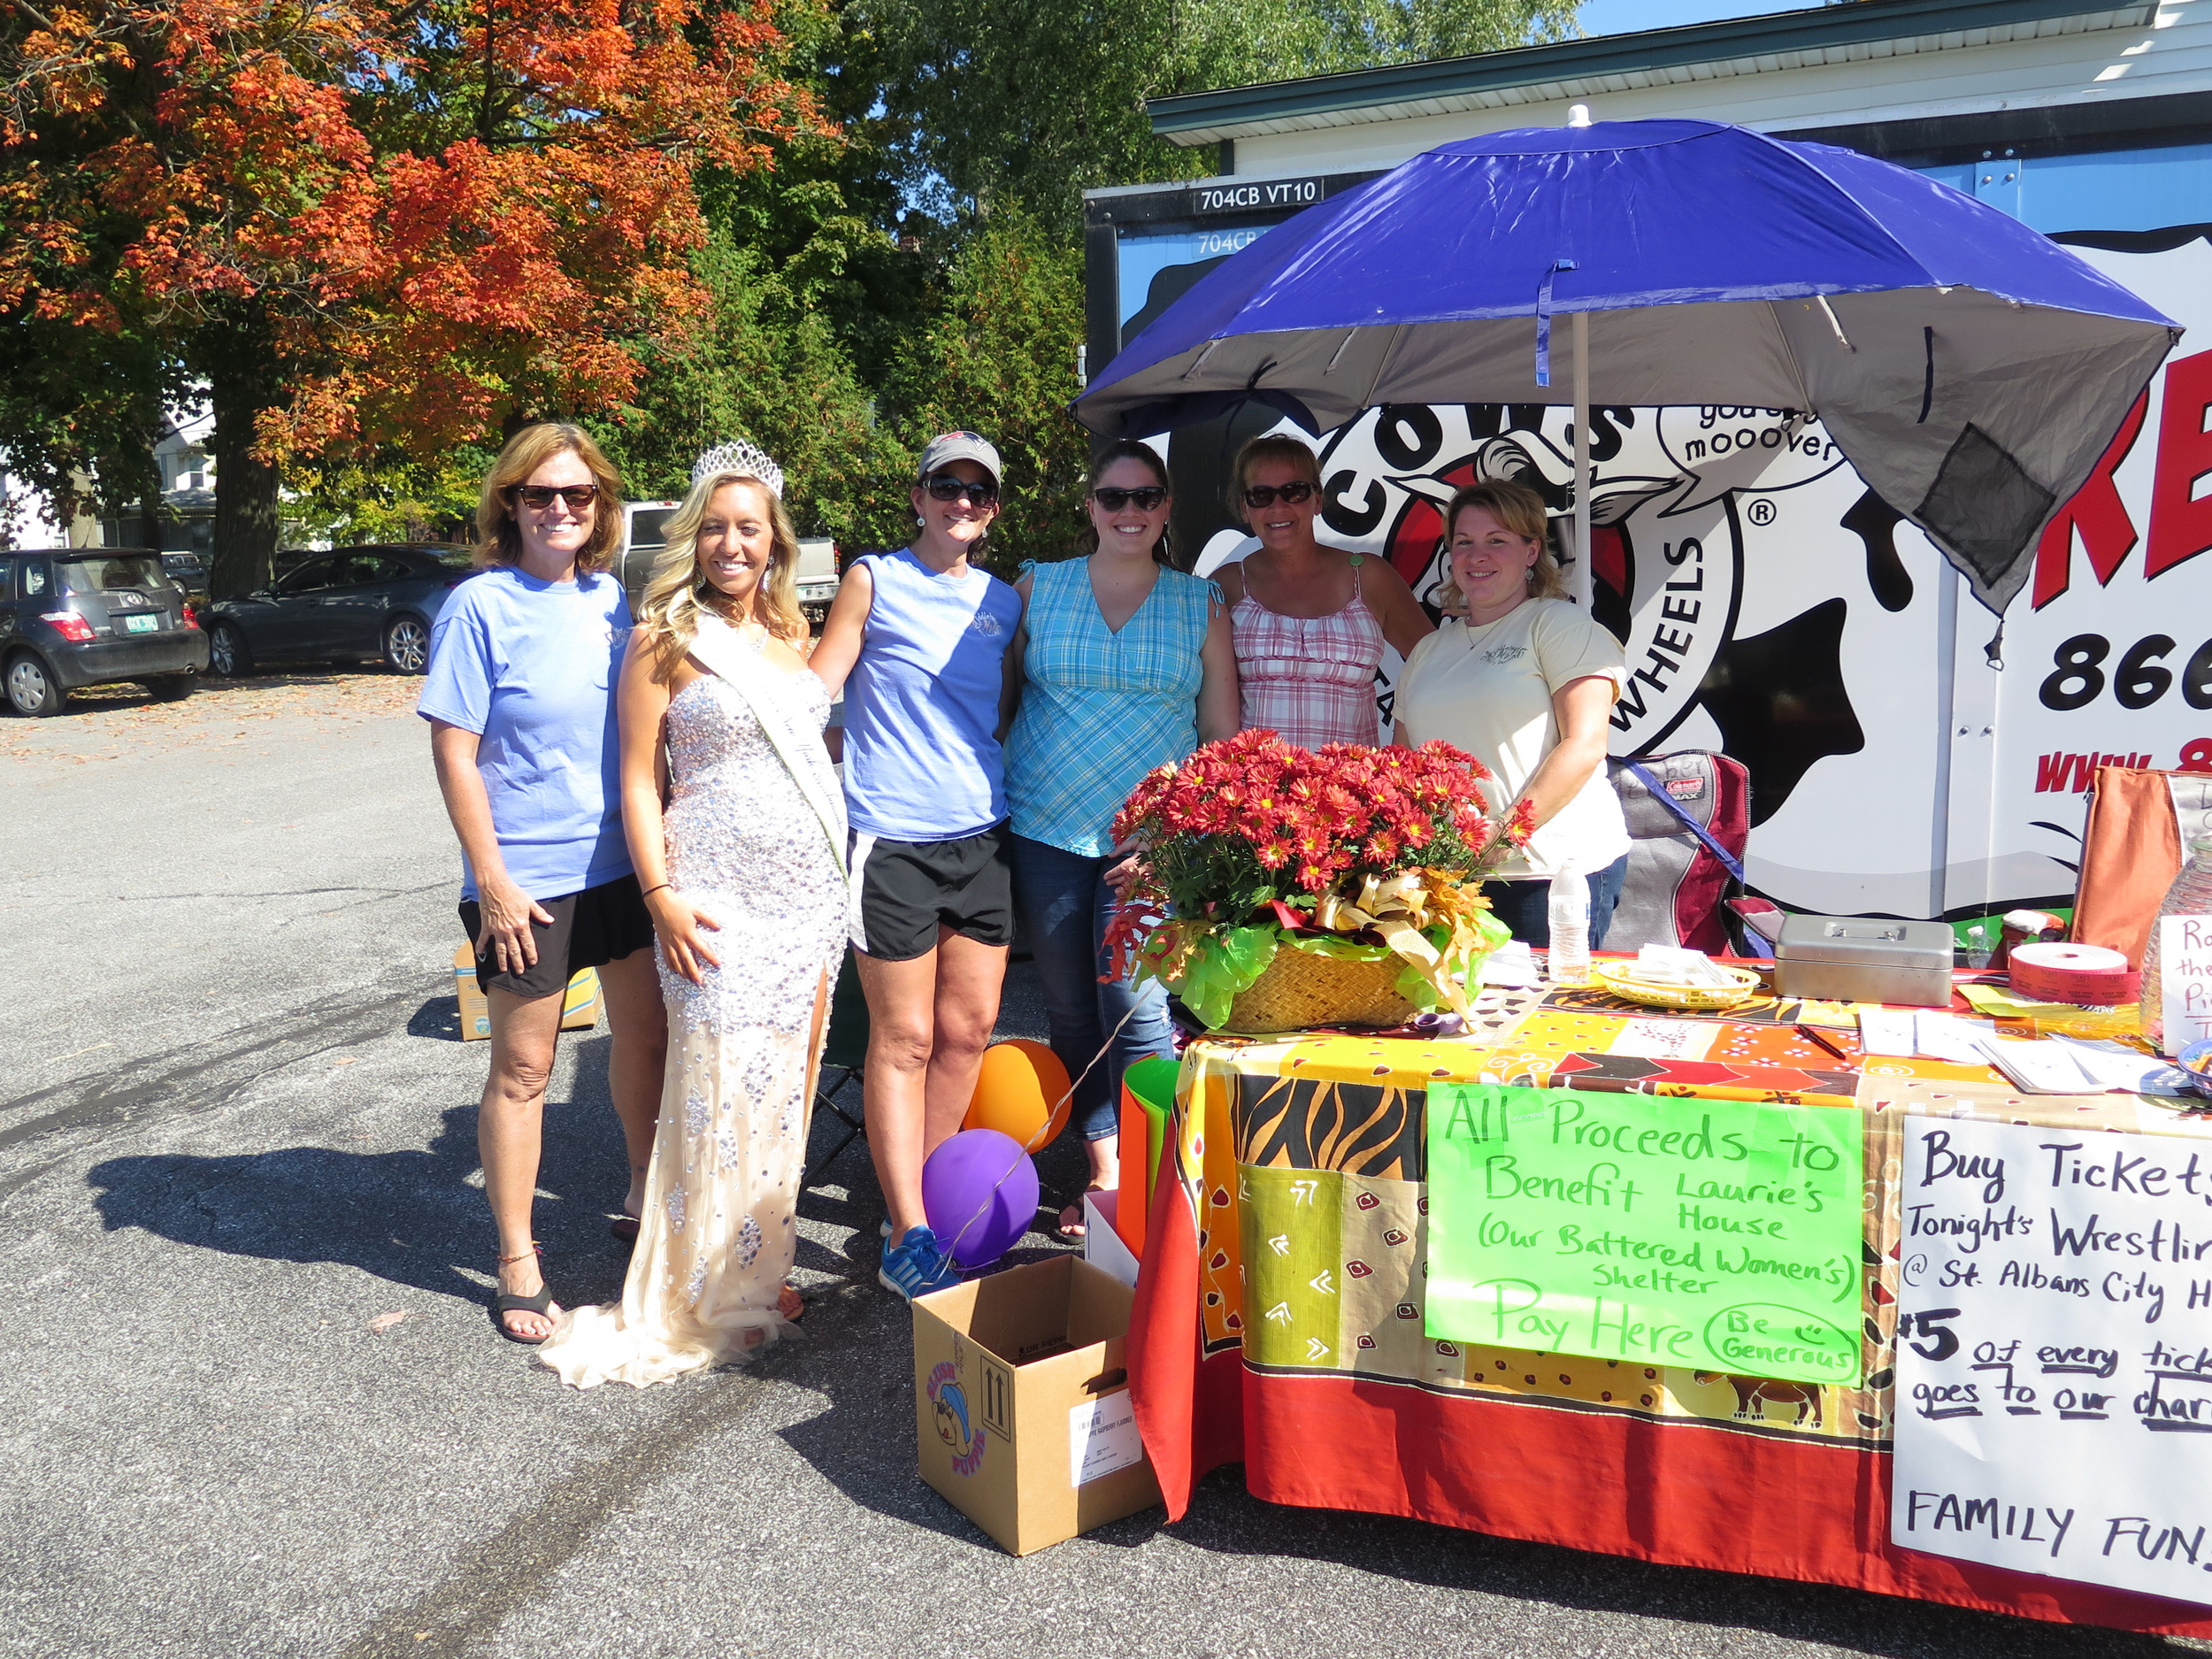 Every year we host a city-wide yard sale to benefit our battered women's shelter. on this day in 2014, for some reason, a beauty queen came by for a while and graced the event! (we never did figure out why she was walking around town randomly!)